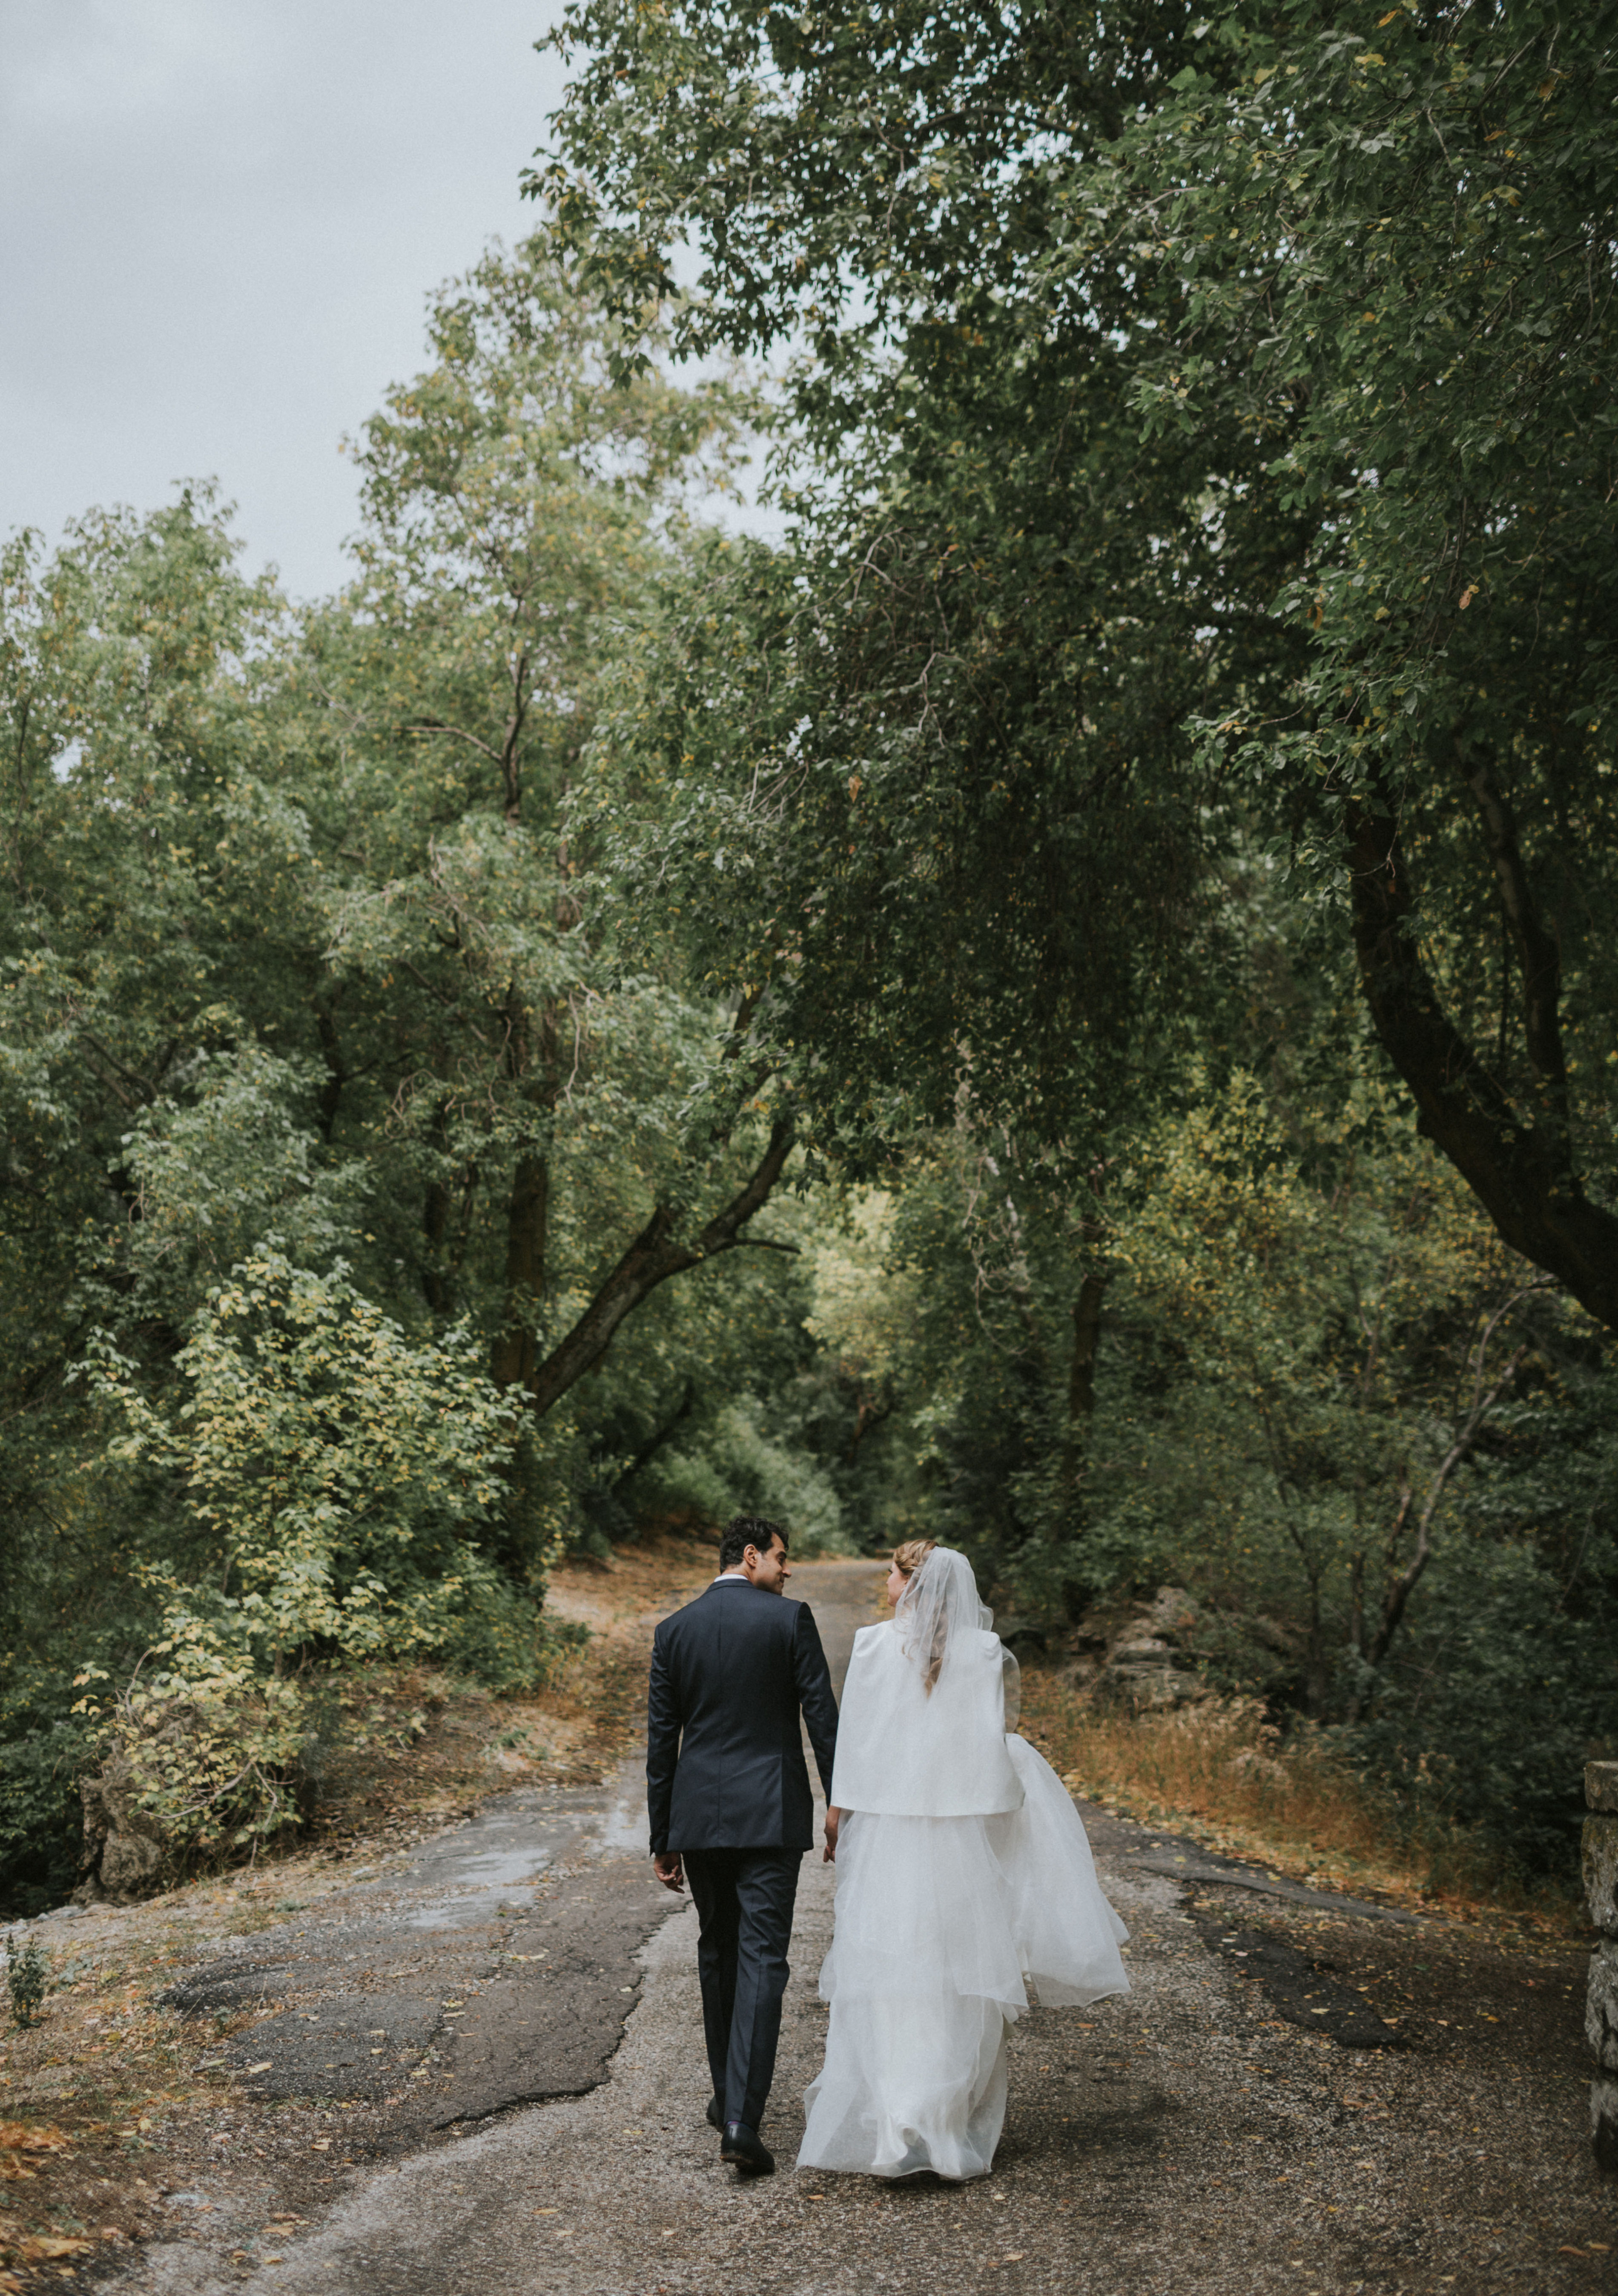 Madison and Igor's Wedding Featured in Rocky Mountain Bride